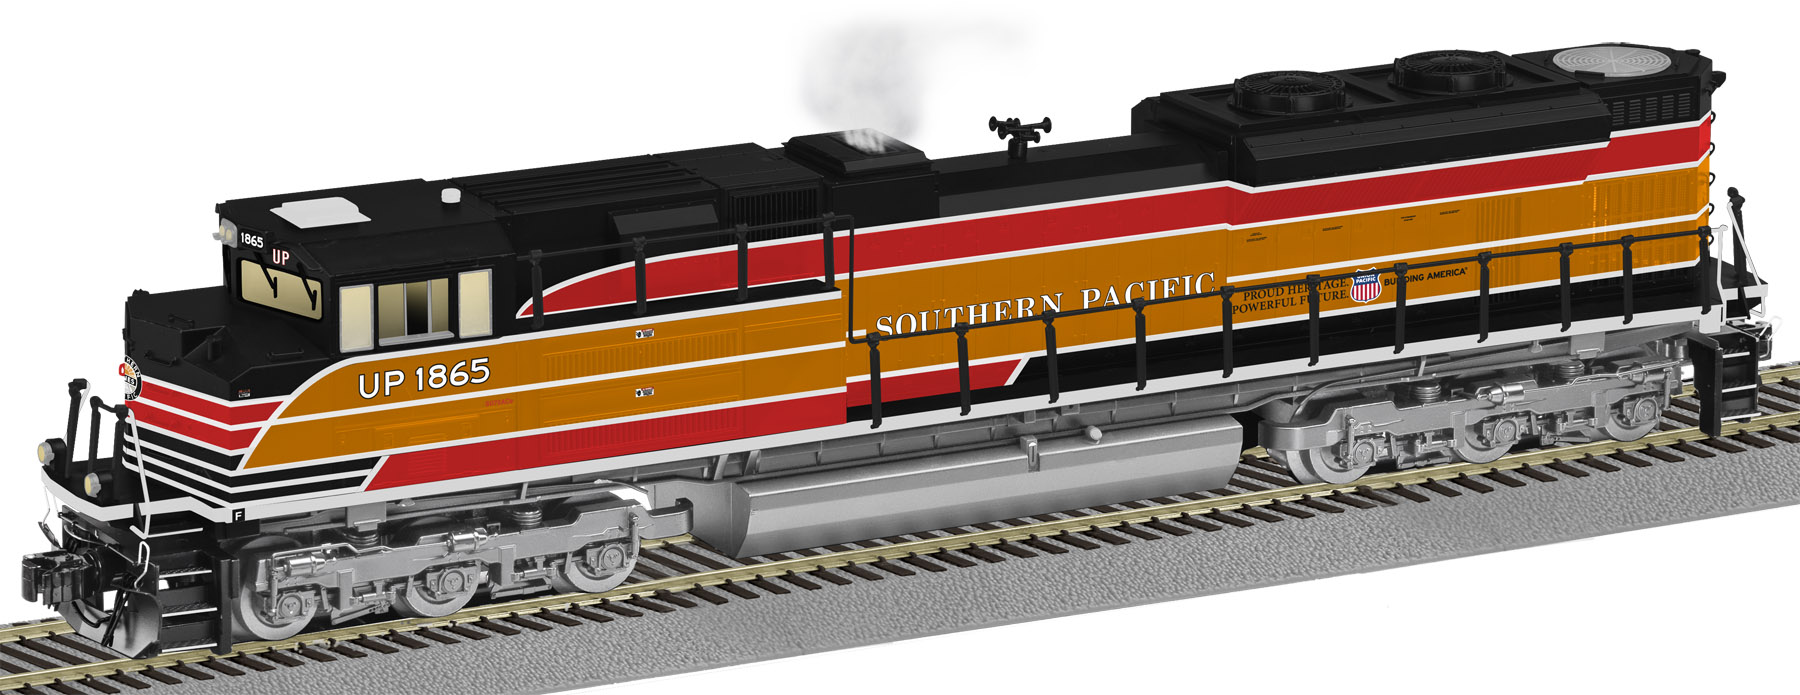 hight resolution of southern pacific